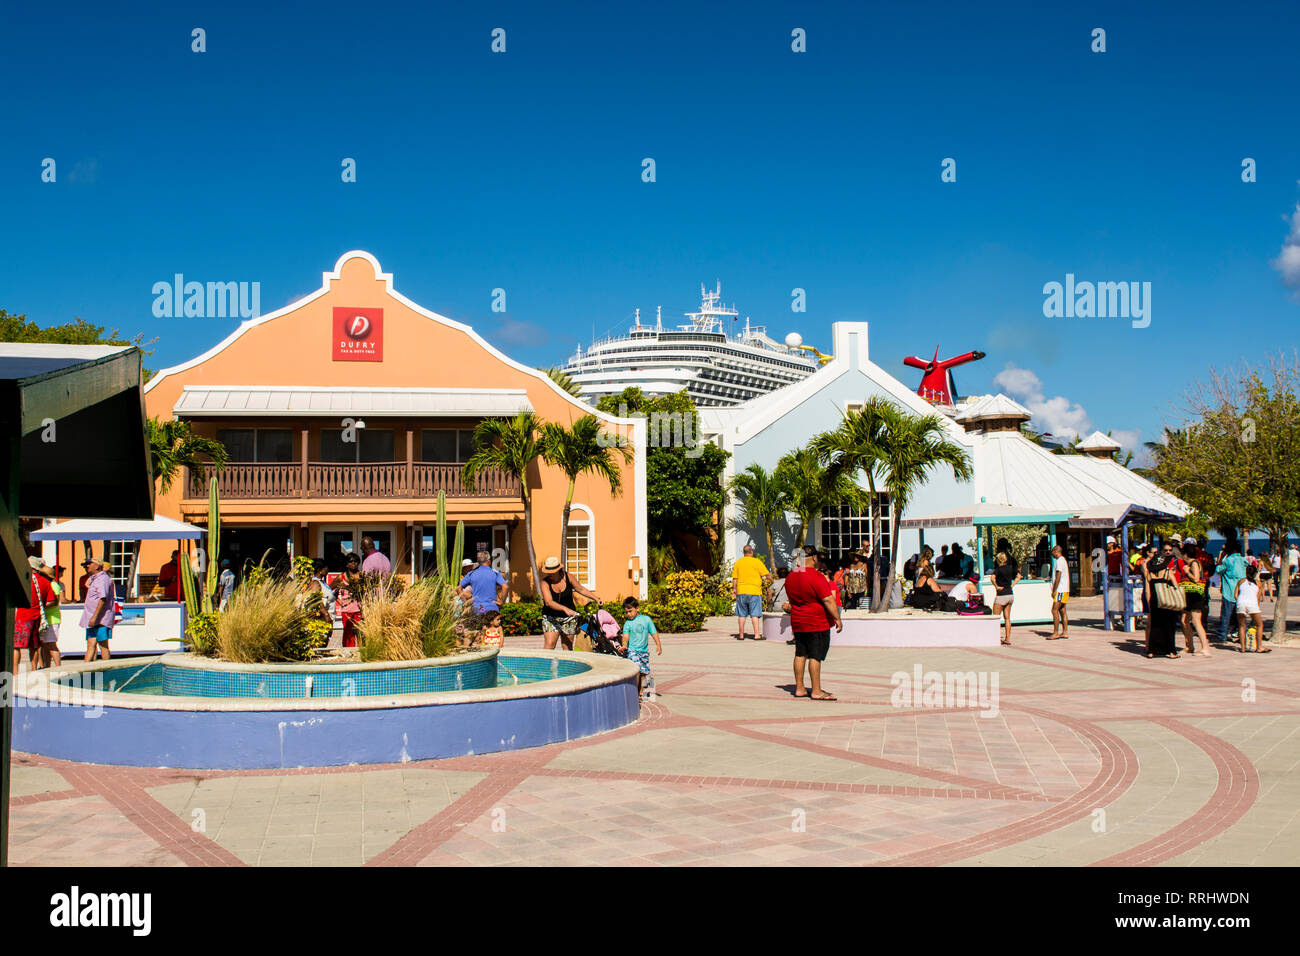 Grand Turk Cruise Port, Grand Turk Island, Turks and Caicos Islands, West Indies, Central America - Stock Image